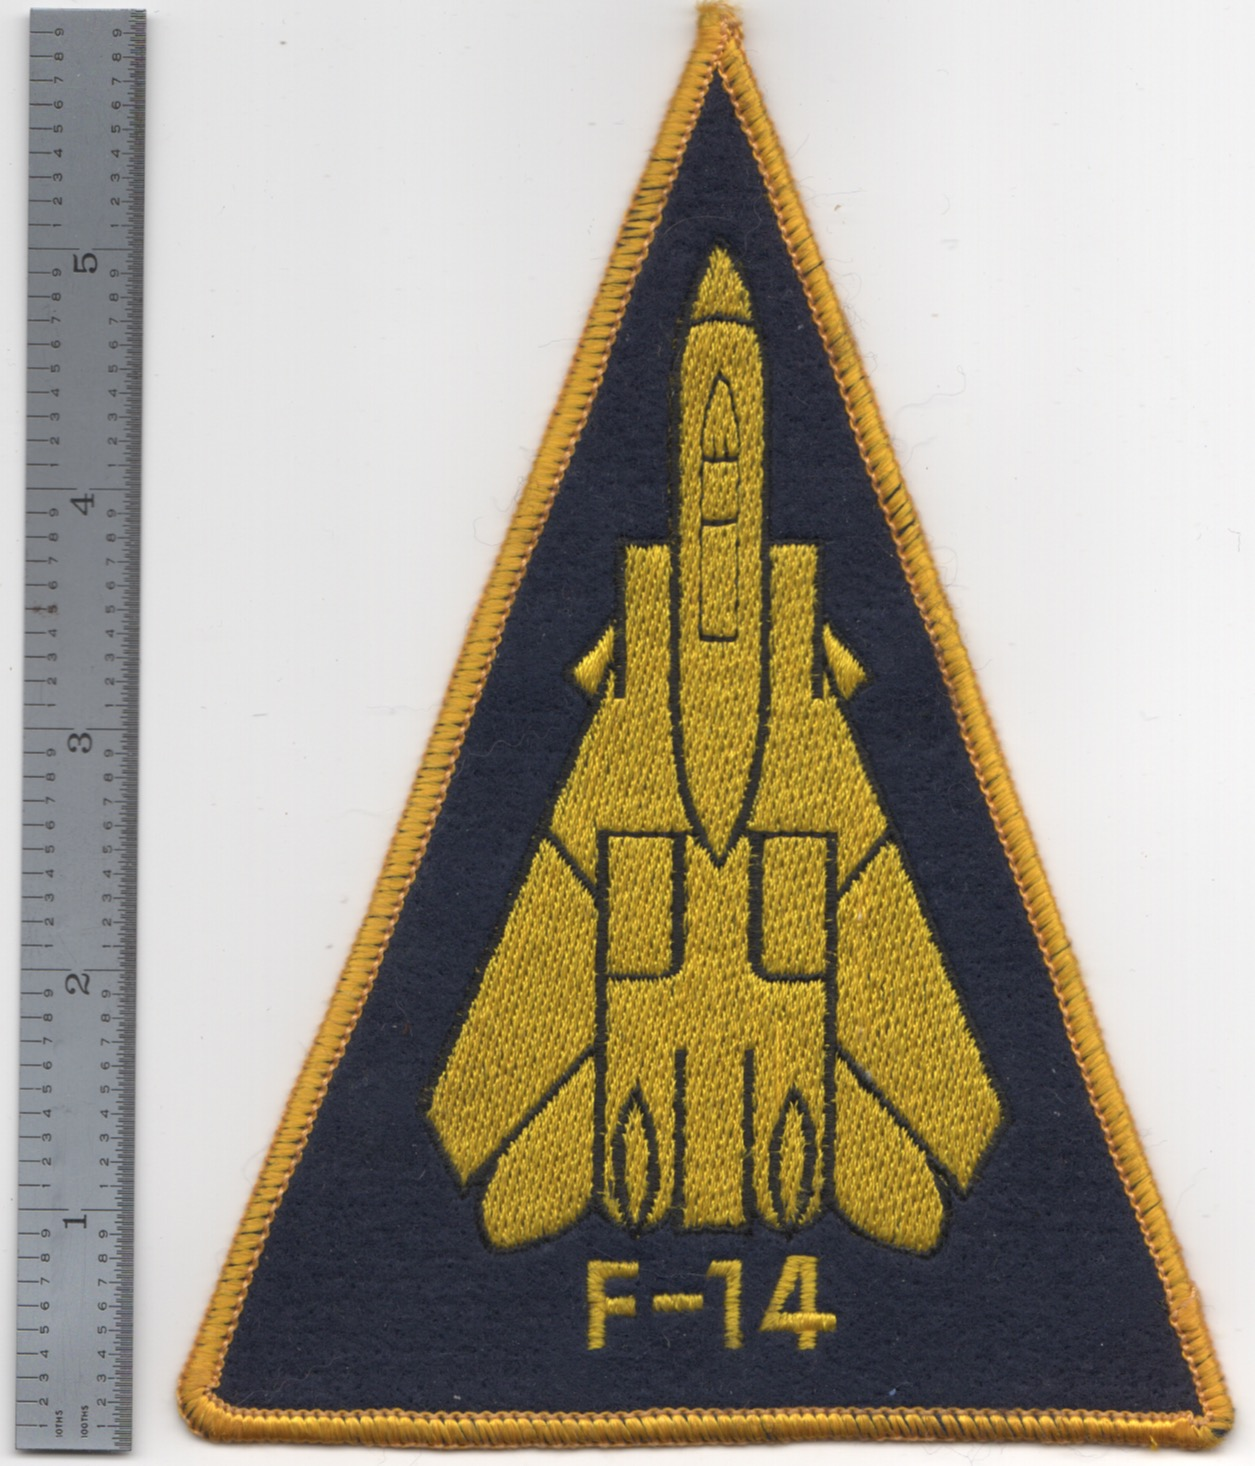 167) F-14 A/C Tri Patch (Large)